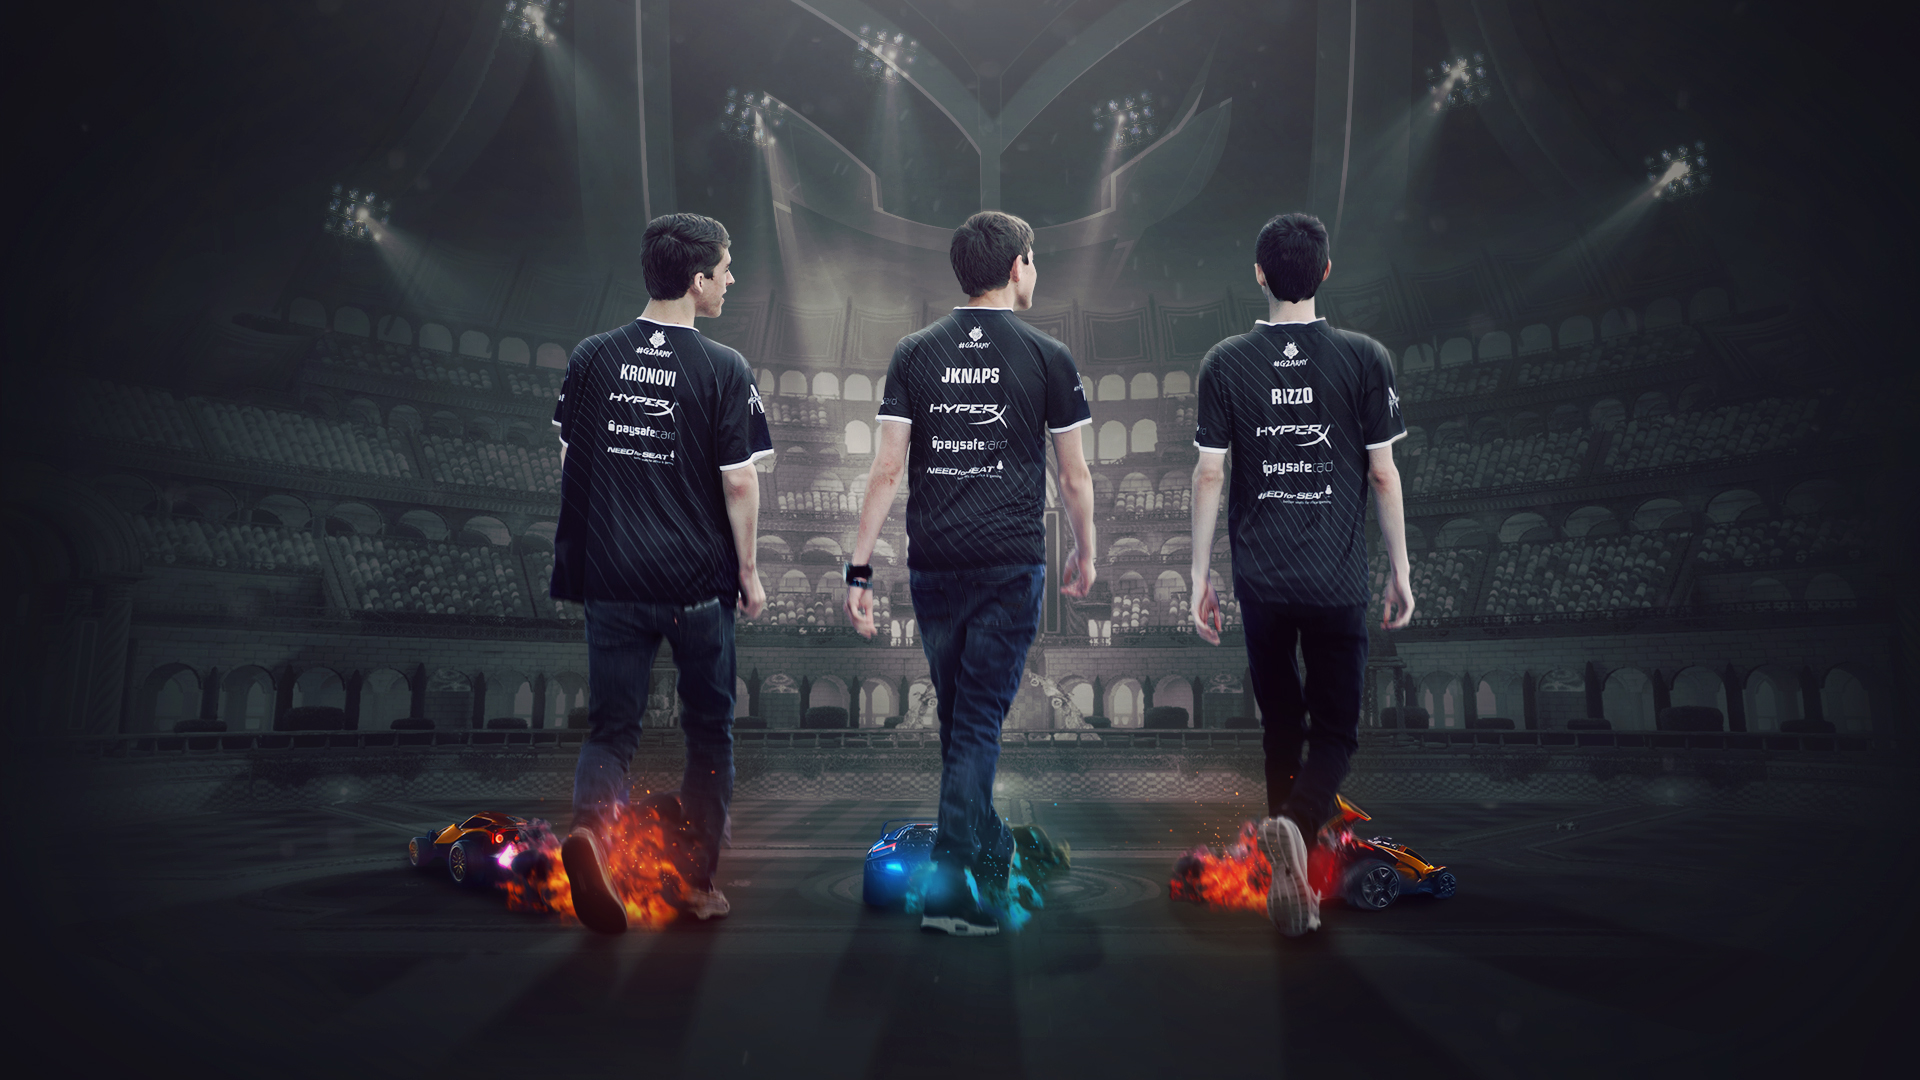 Pubg Wallpapers Portrait: We Should Stop Talking About G2's Inconsistency